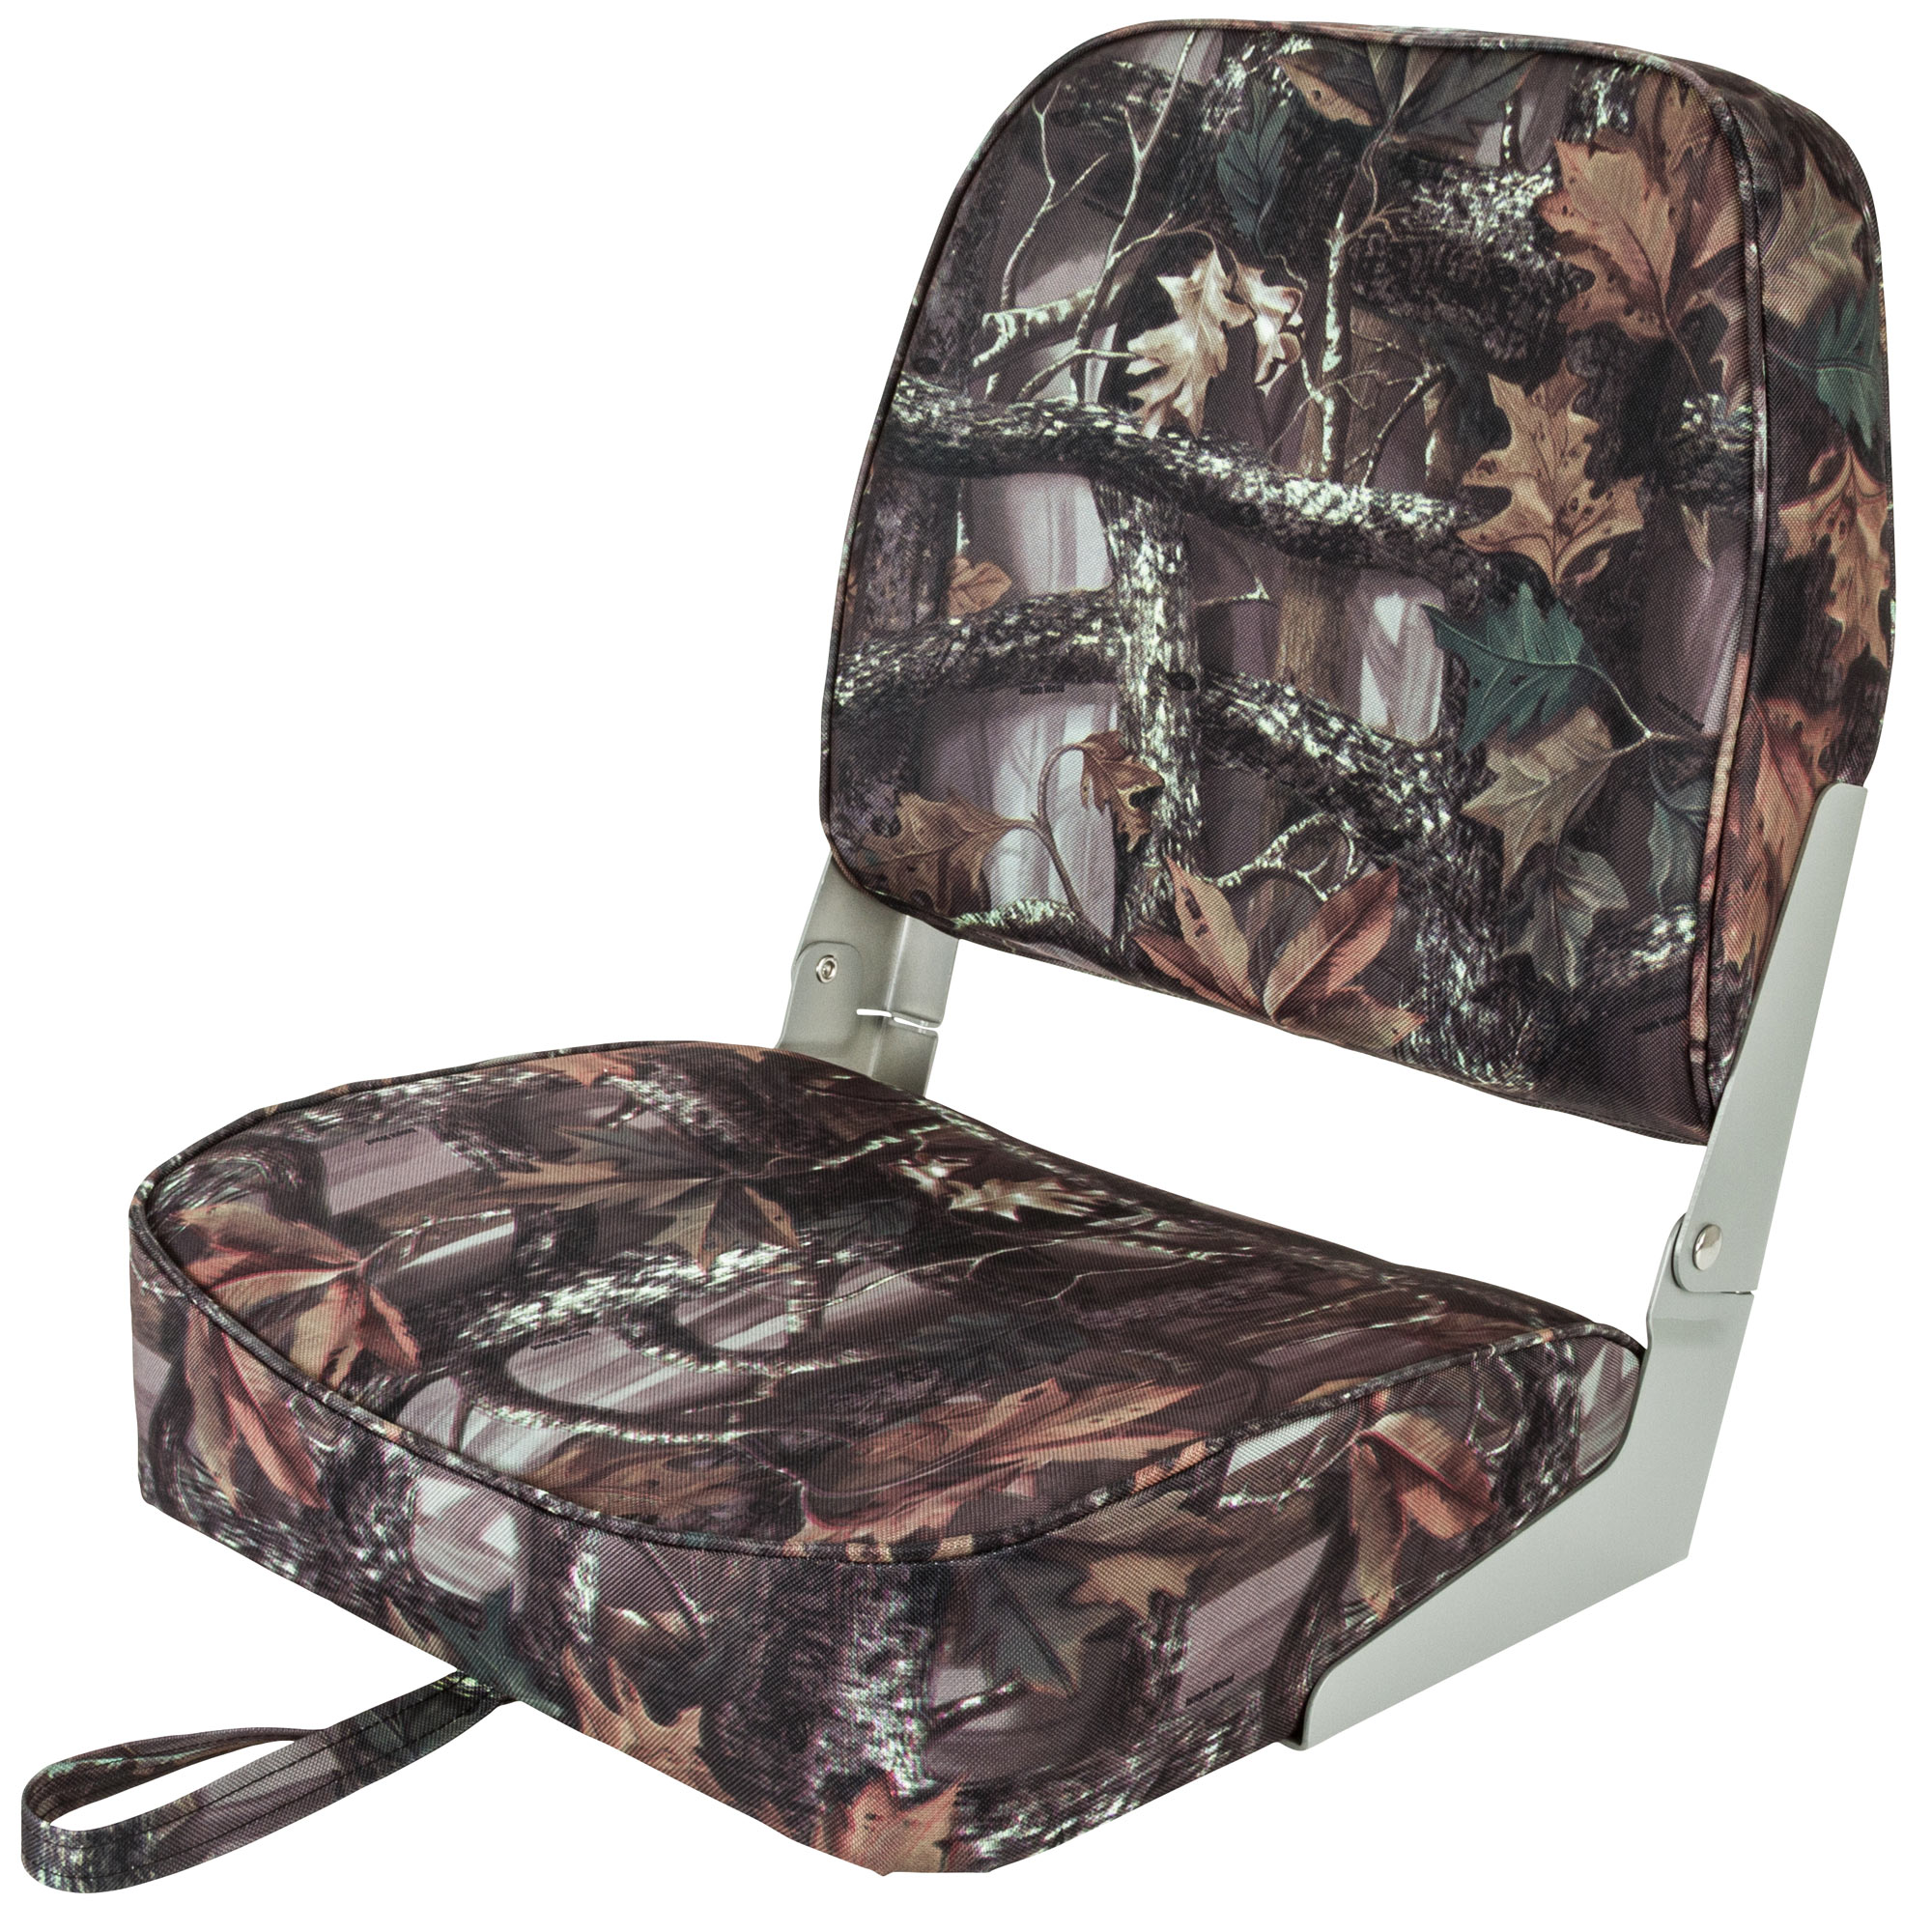 KILL SHOT FOLDING CAMO BOAT SEAT FISHING CAMOUFLAGE DUCK HUNTING CHAIR